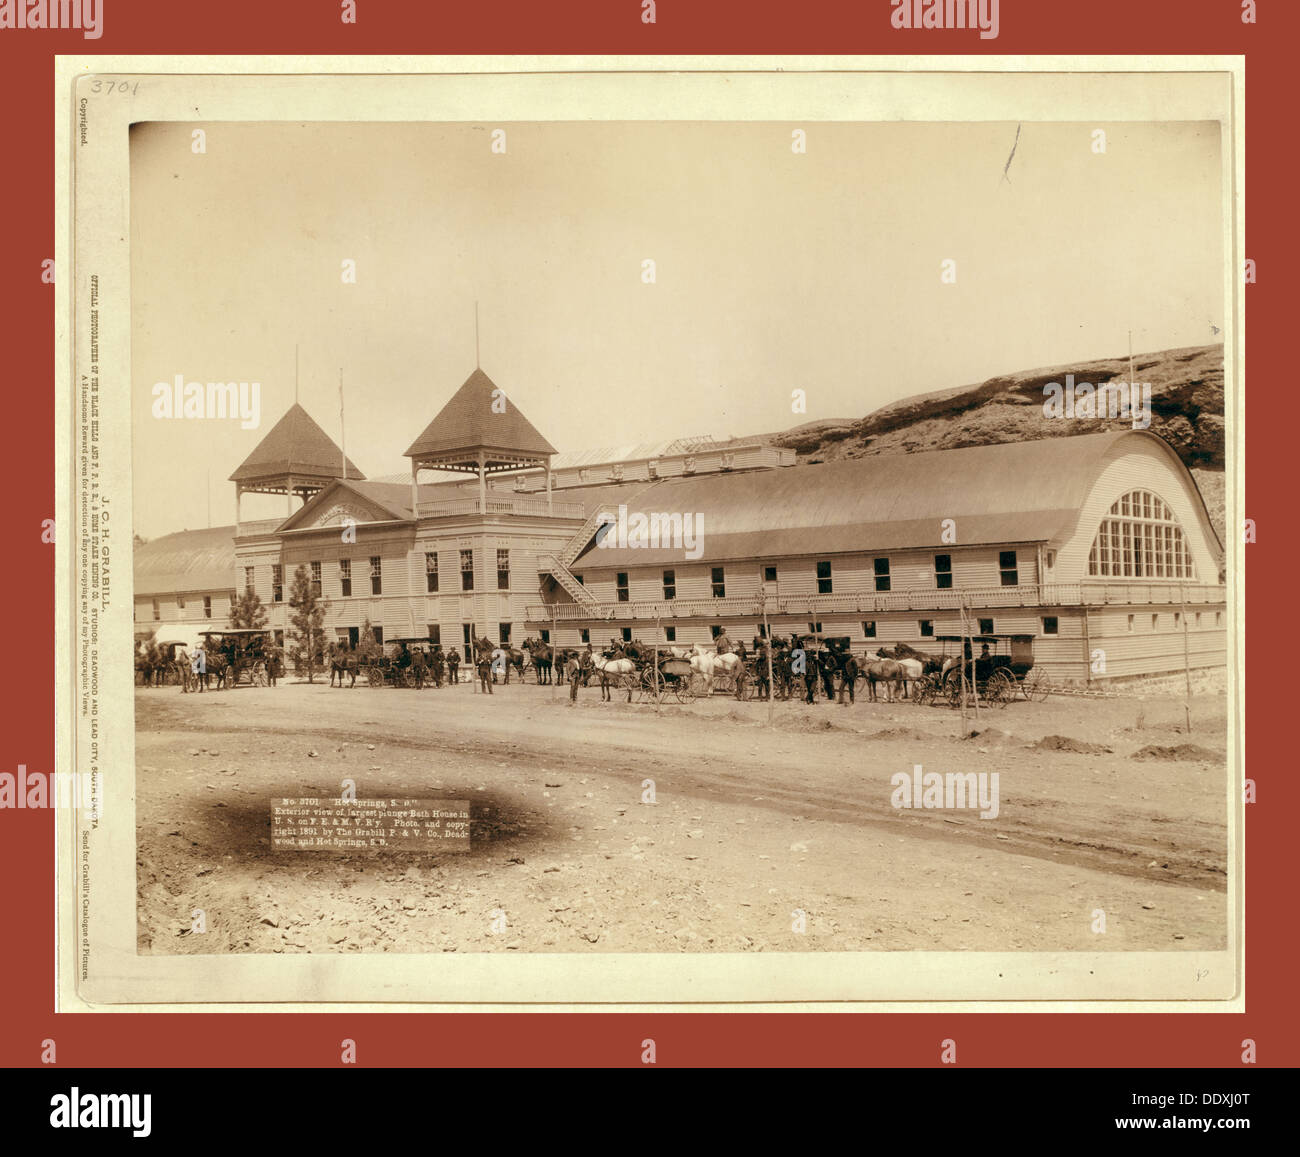 Hot Springs, S.D. Exterior view of largest plunge bath house in U.S. on F.E. and M.V. R'y - Stock Image